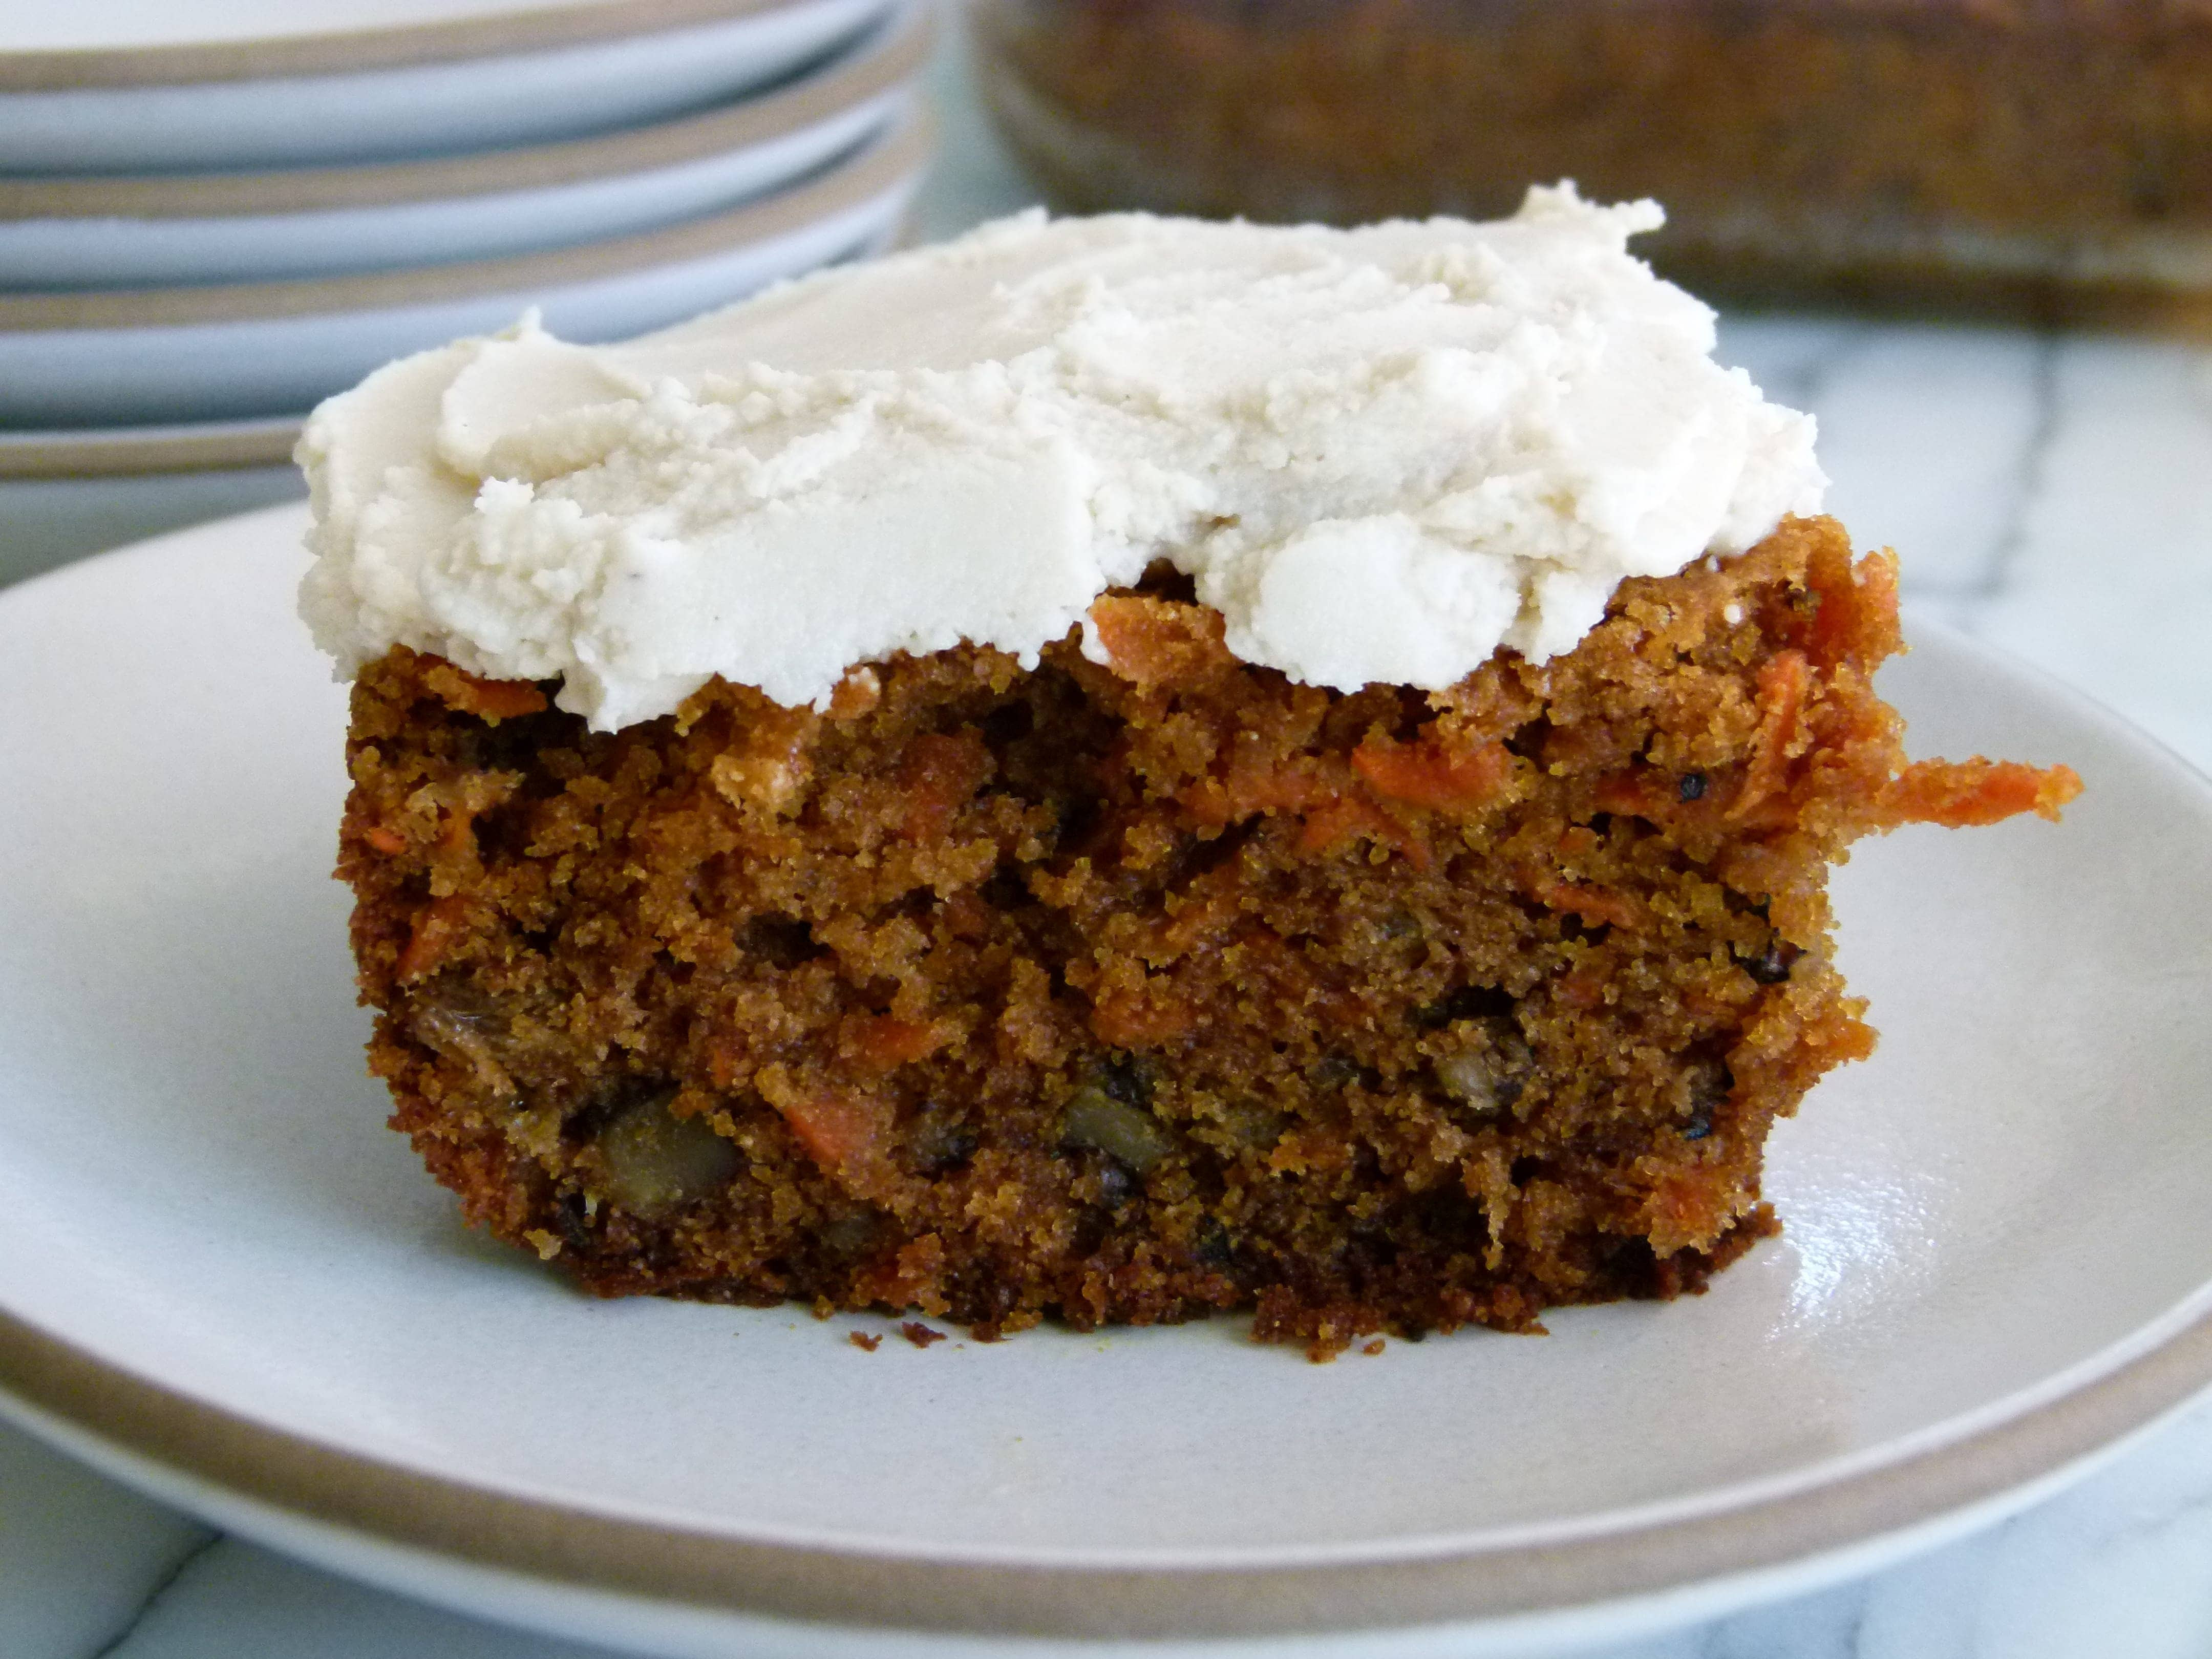 Paleo Cake Recipe  PALEO CARROT CAKE THAT WILL FOOL YOUR NON PALEO FRIENDS